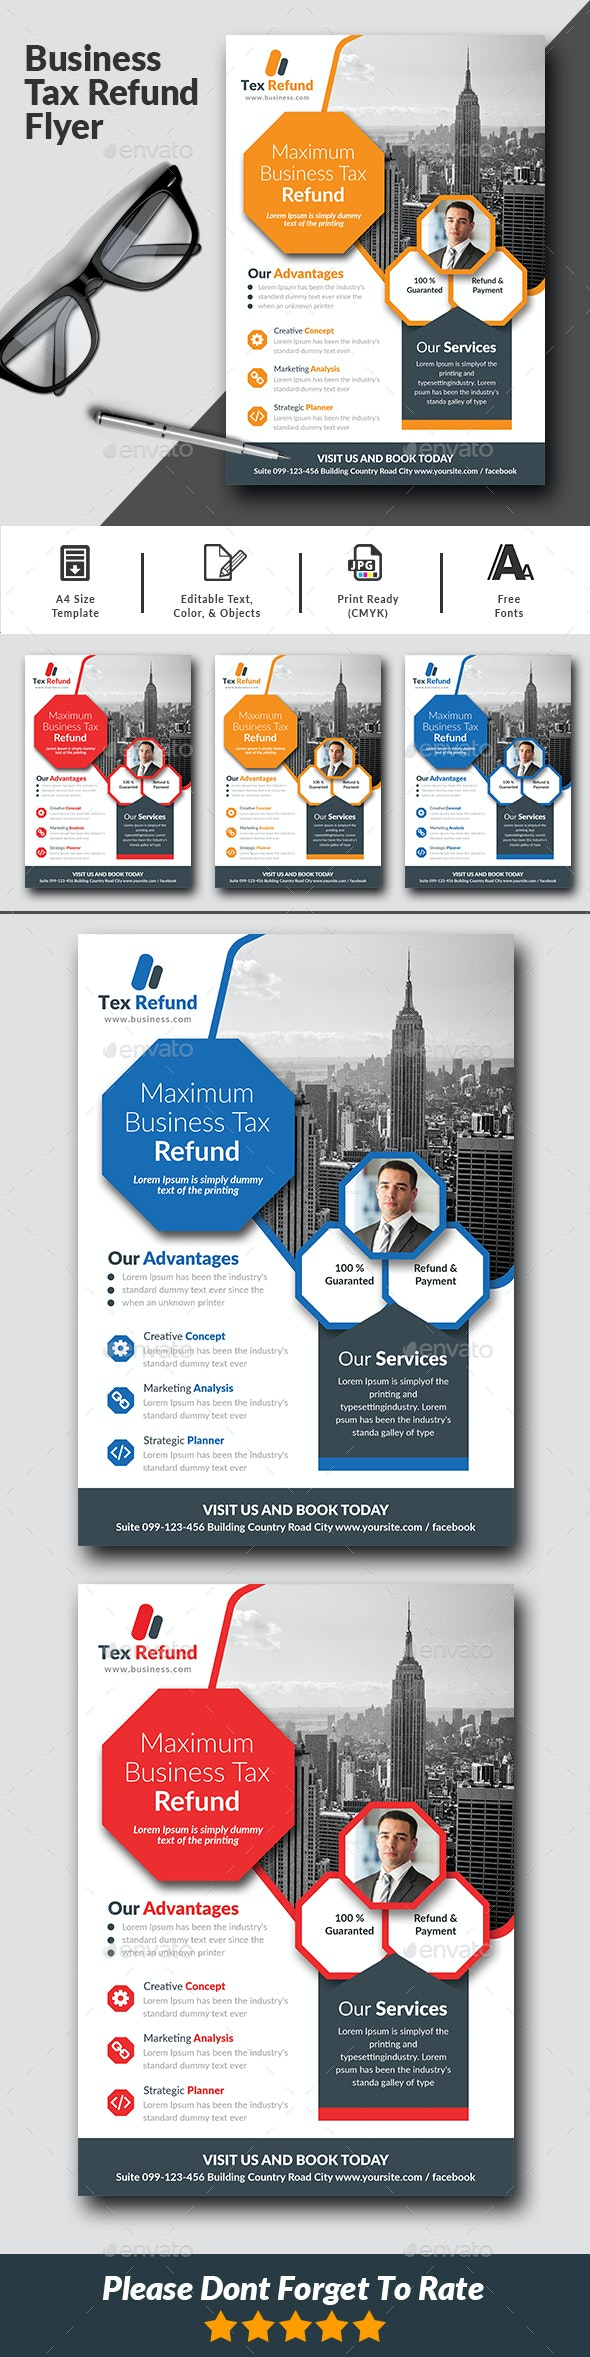 Business Tax Refund Flyer - Corporate Flyers